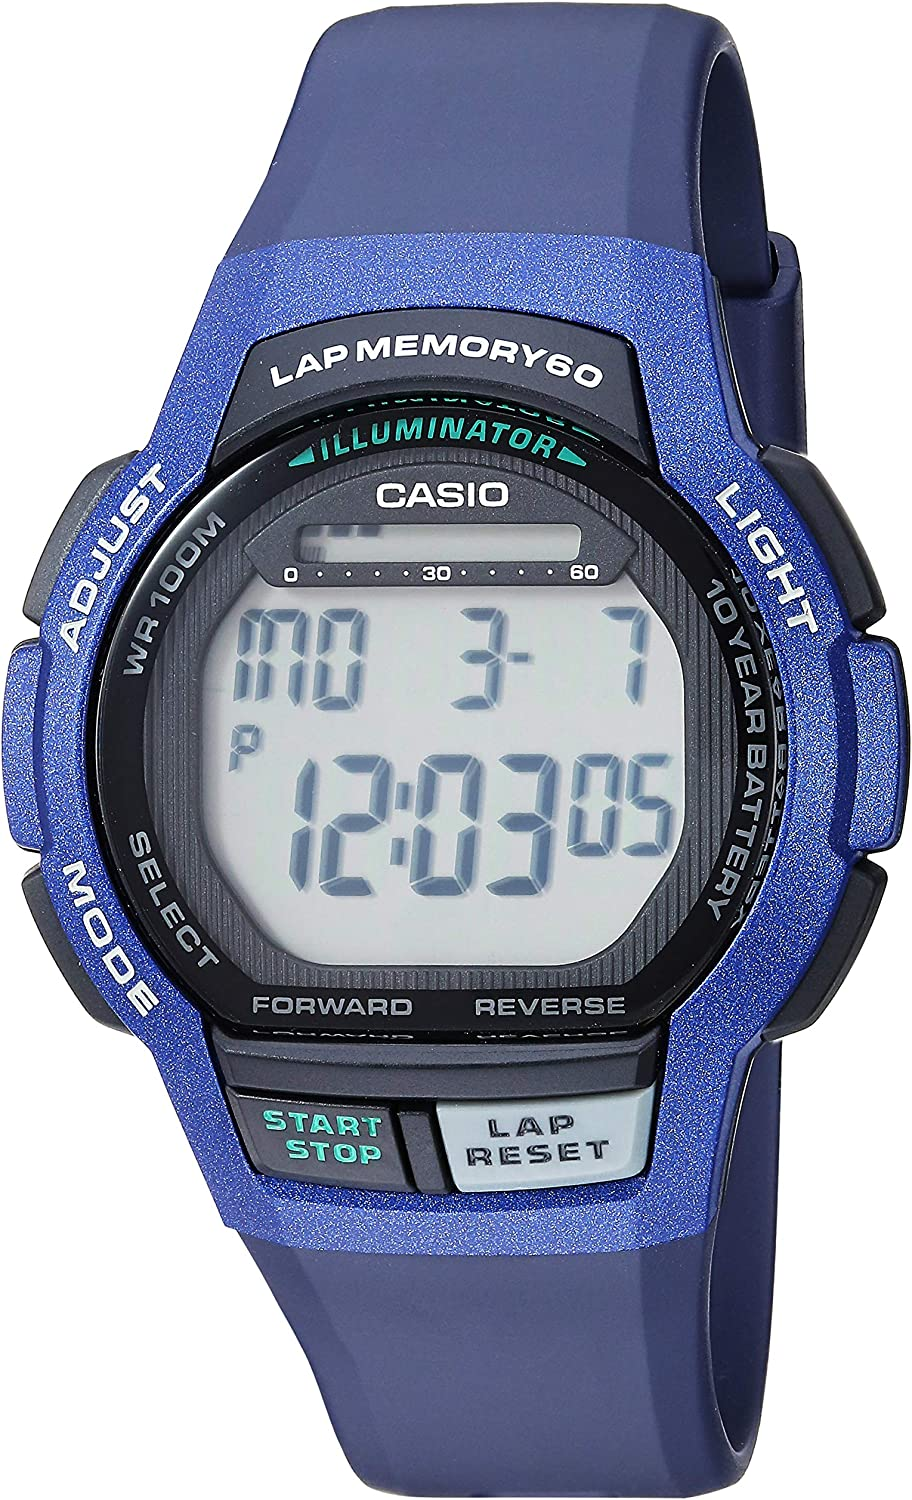 Casio Men's 10- Year Battery Stainless Steel Quartz Sport Watch with Resin Strap, Blue, 22 (Model: WS-1000H-2AVCF)